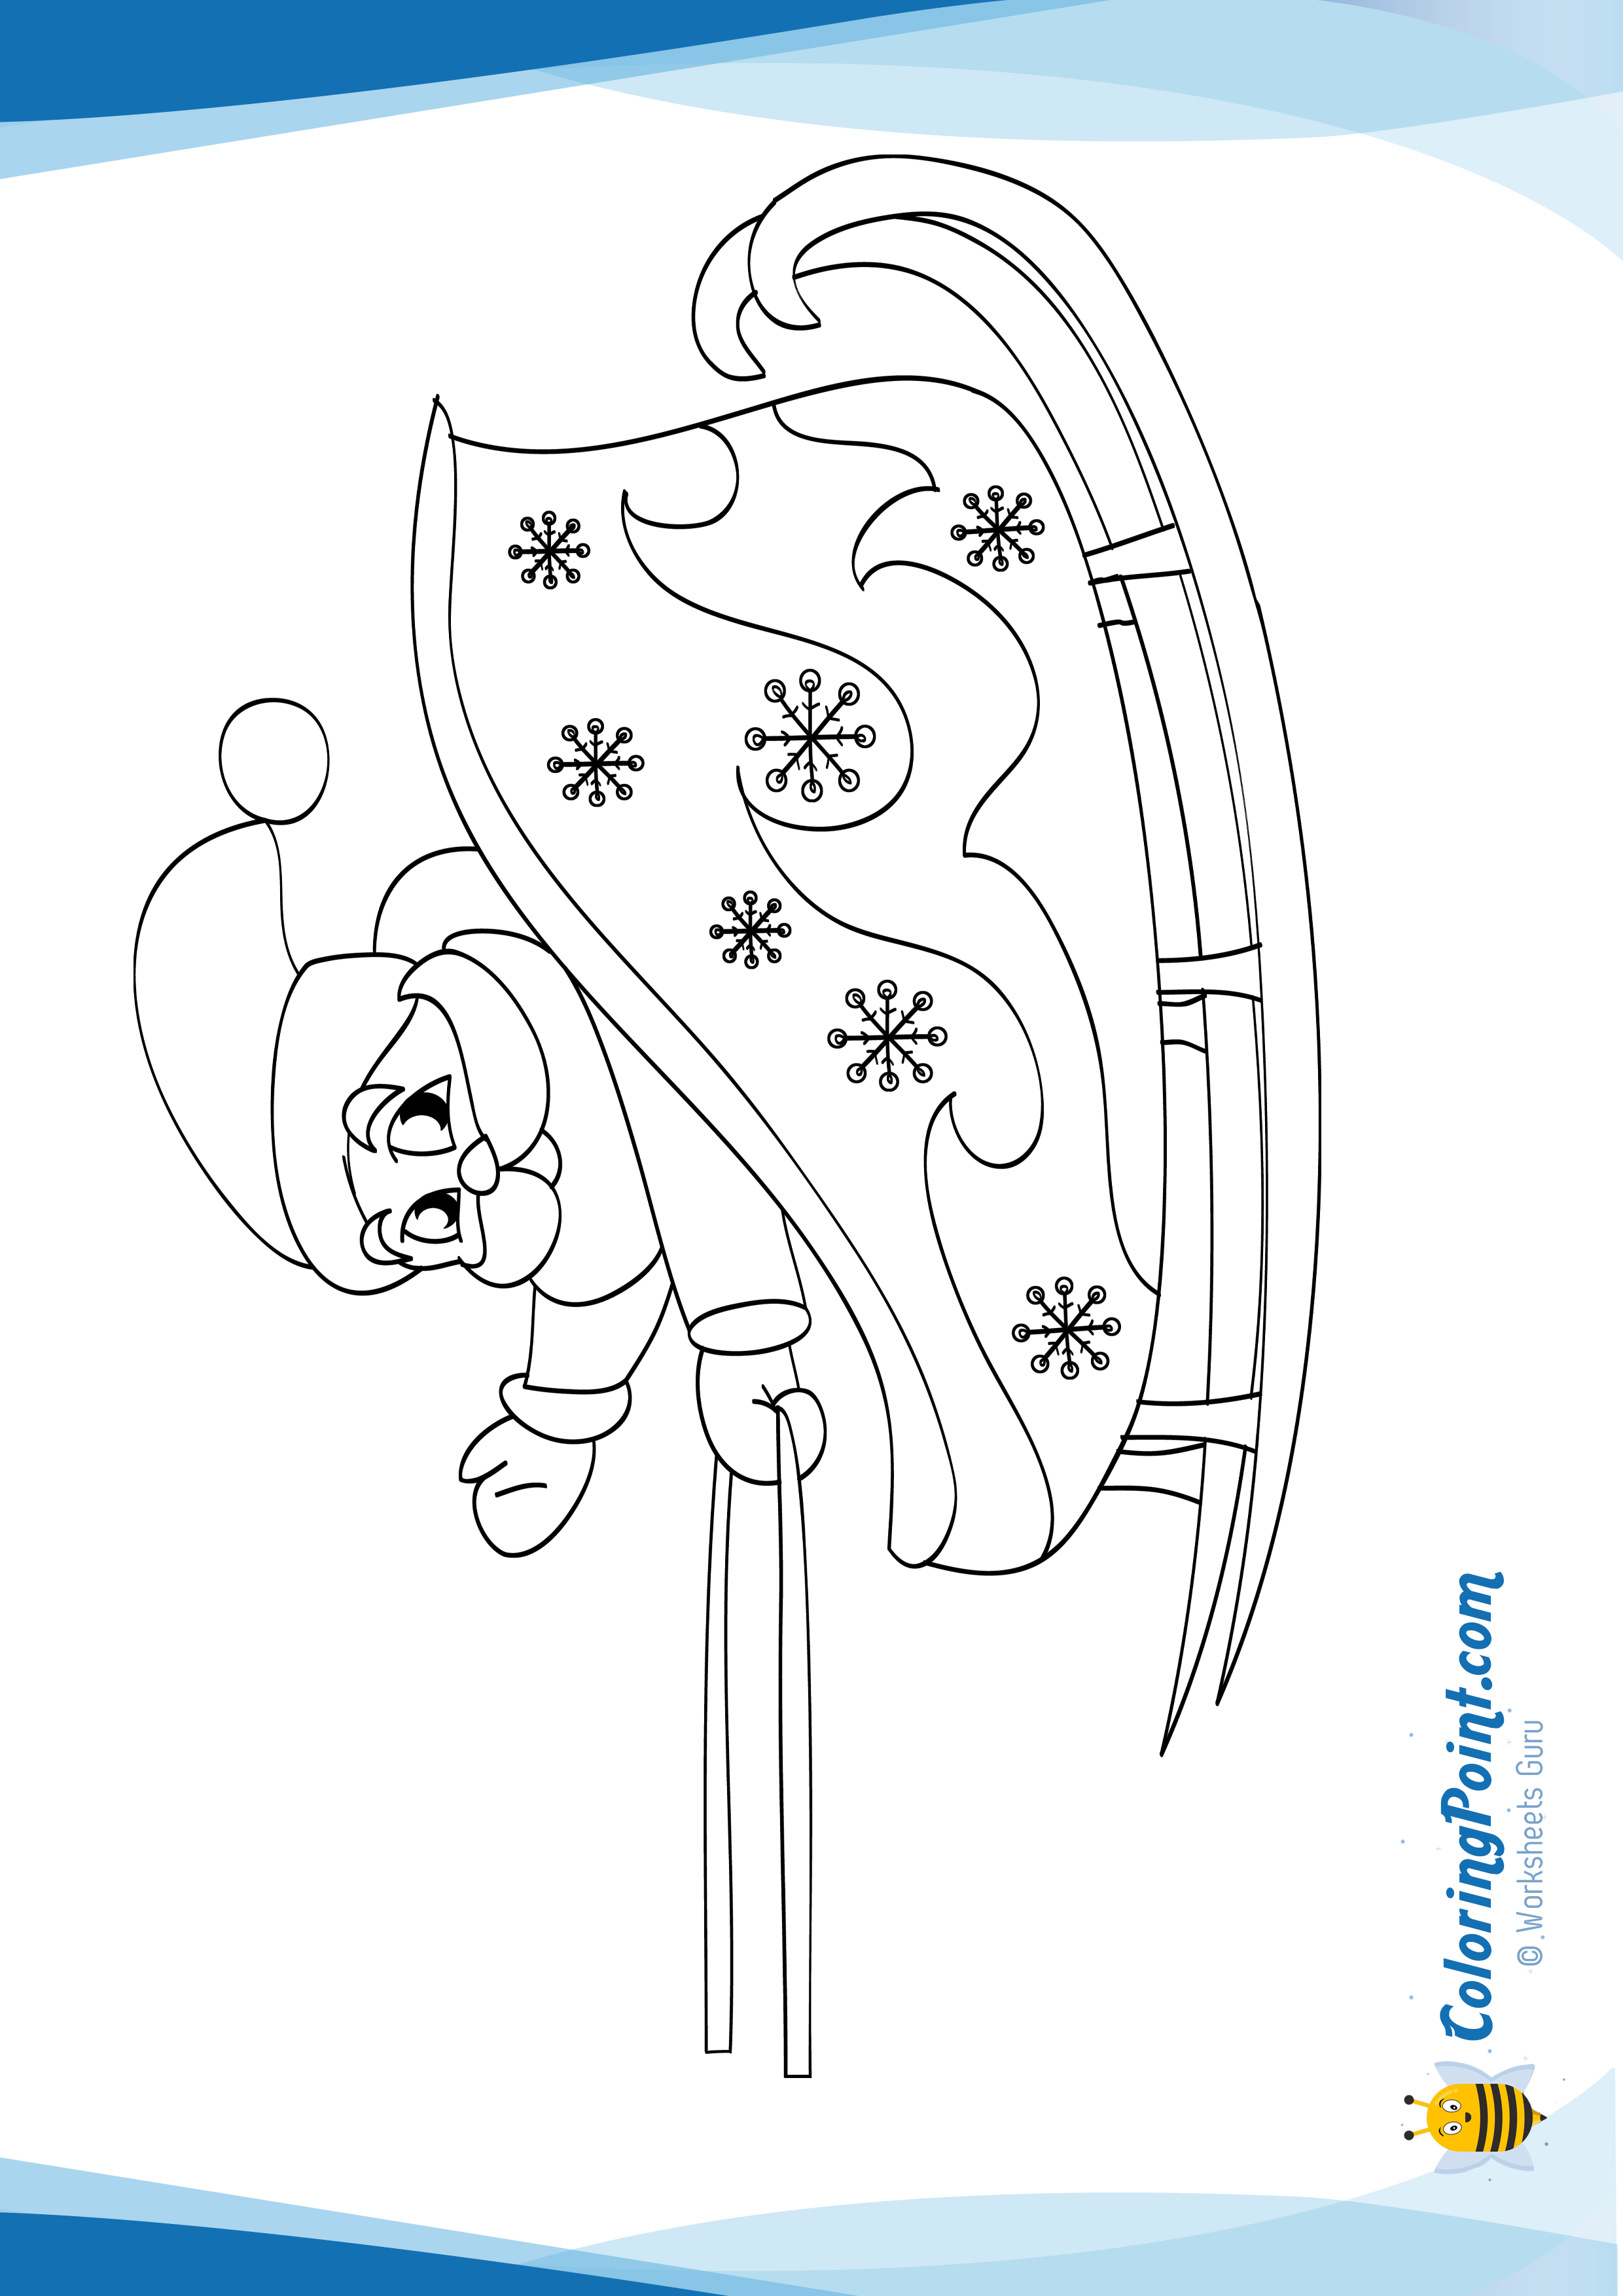 Santa Claus Boots Coloring Pages With On His Sleigh Page There Is A New